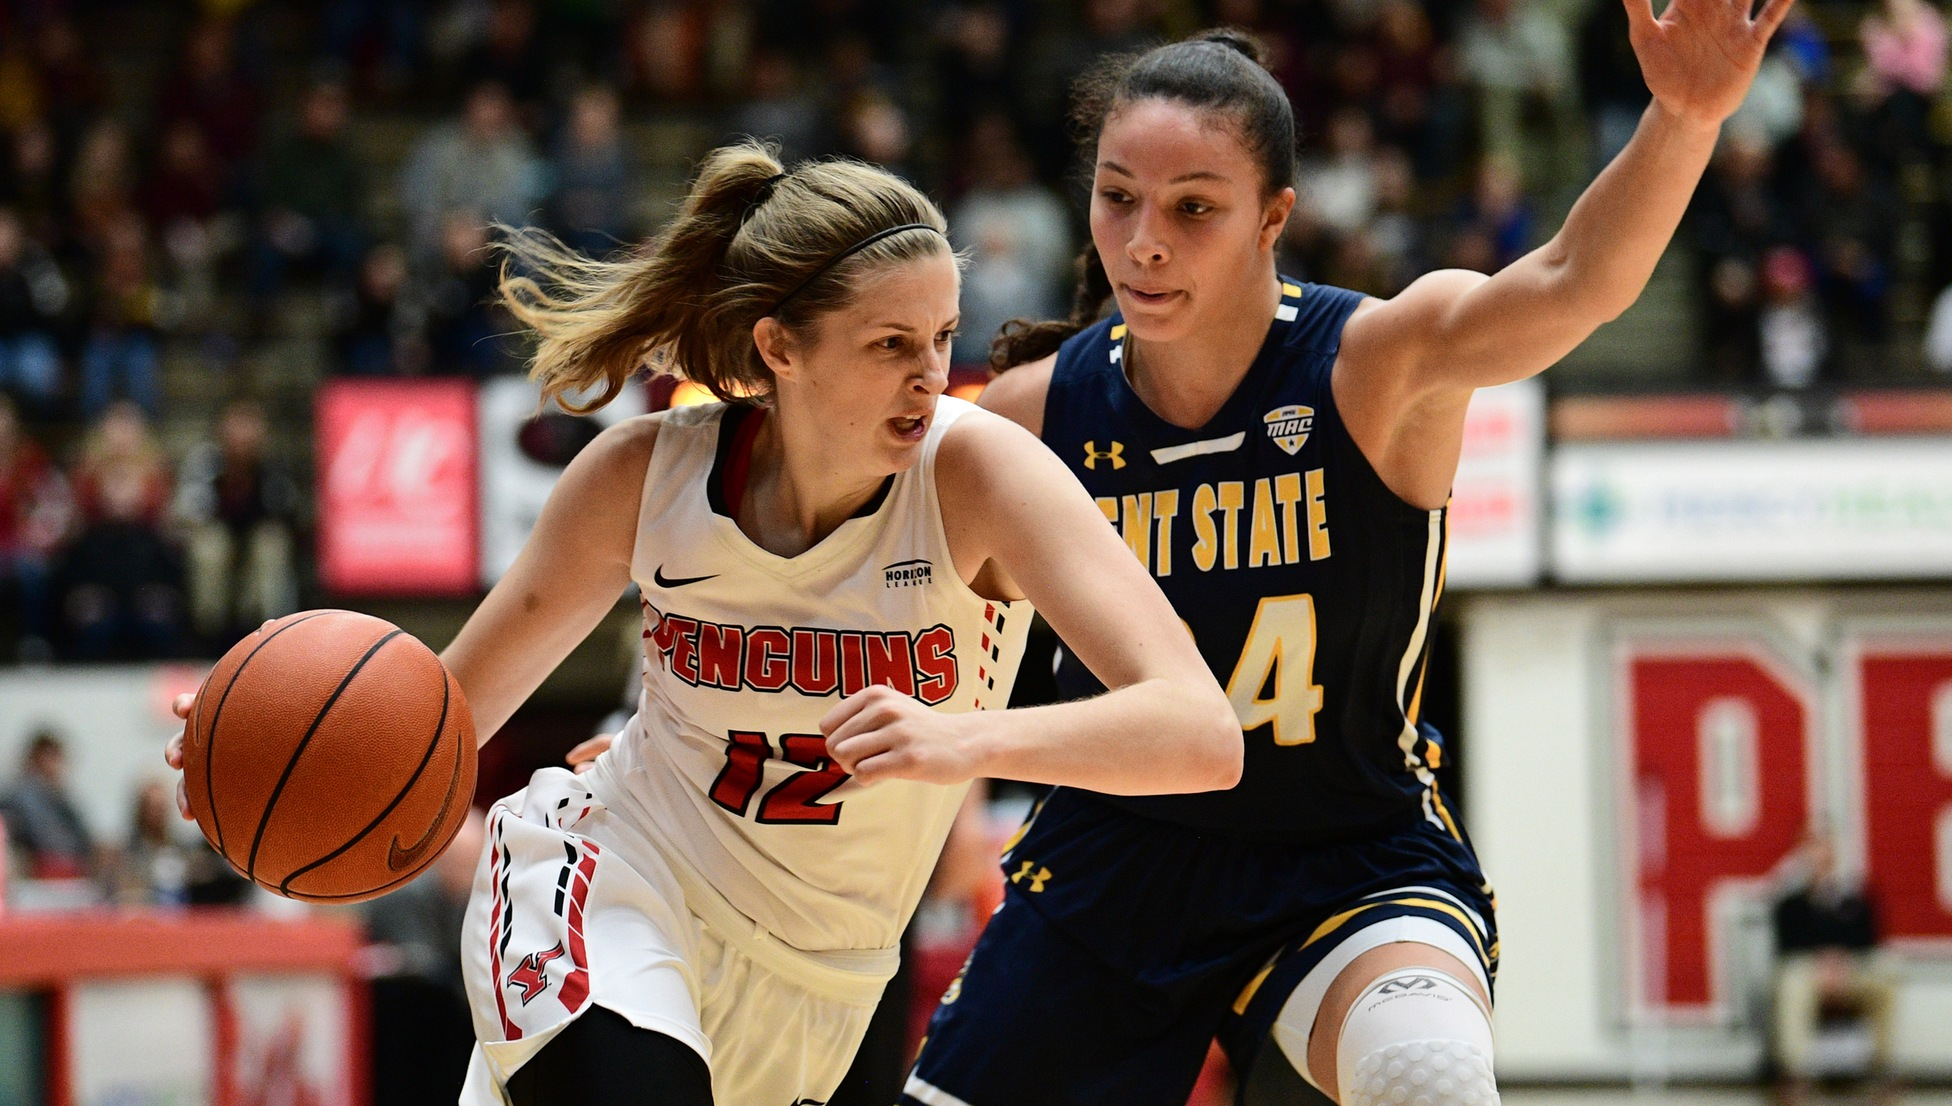 Chelsea Olson (Photo by David Dermer)